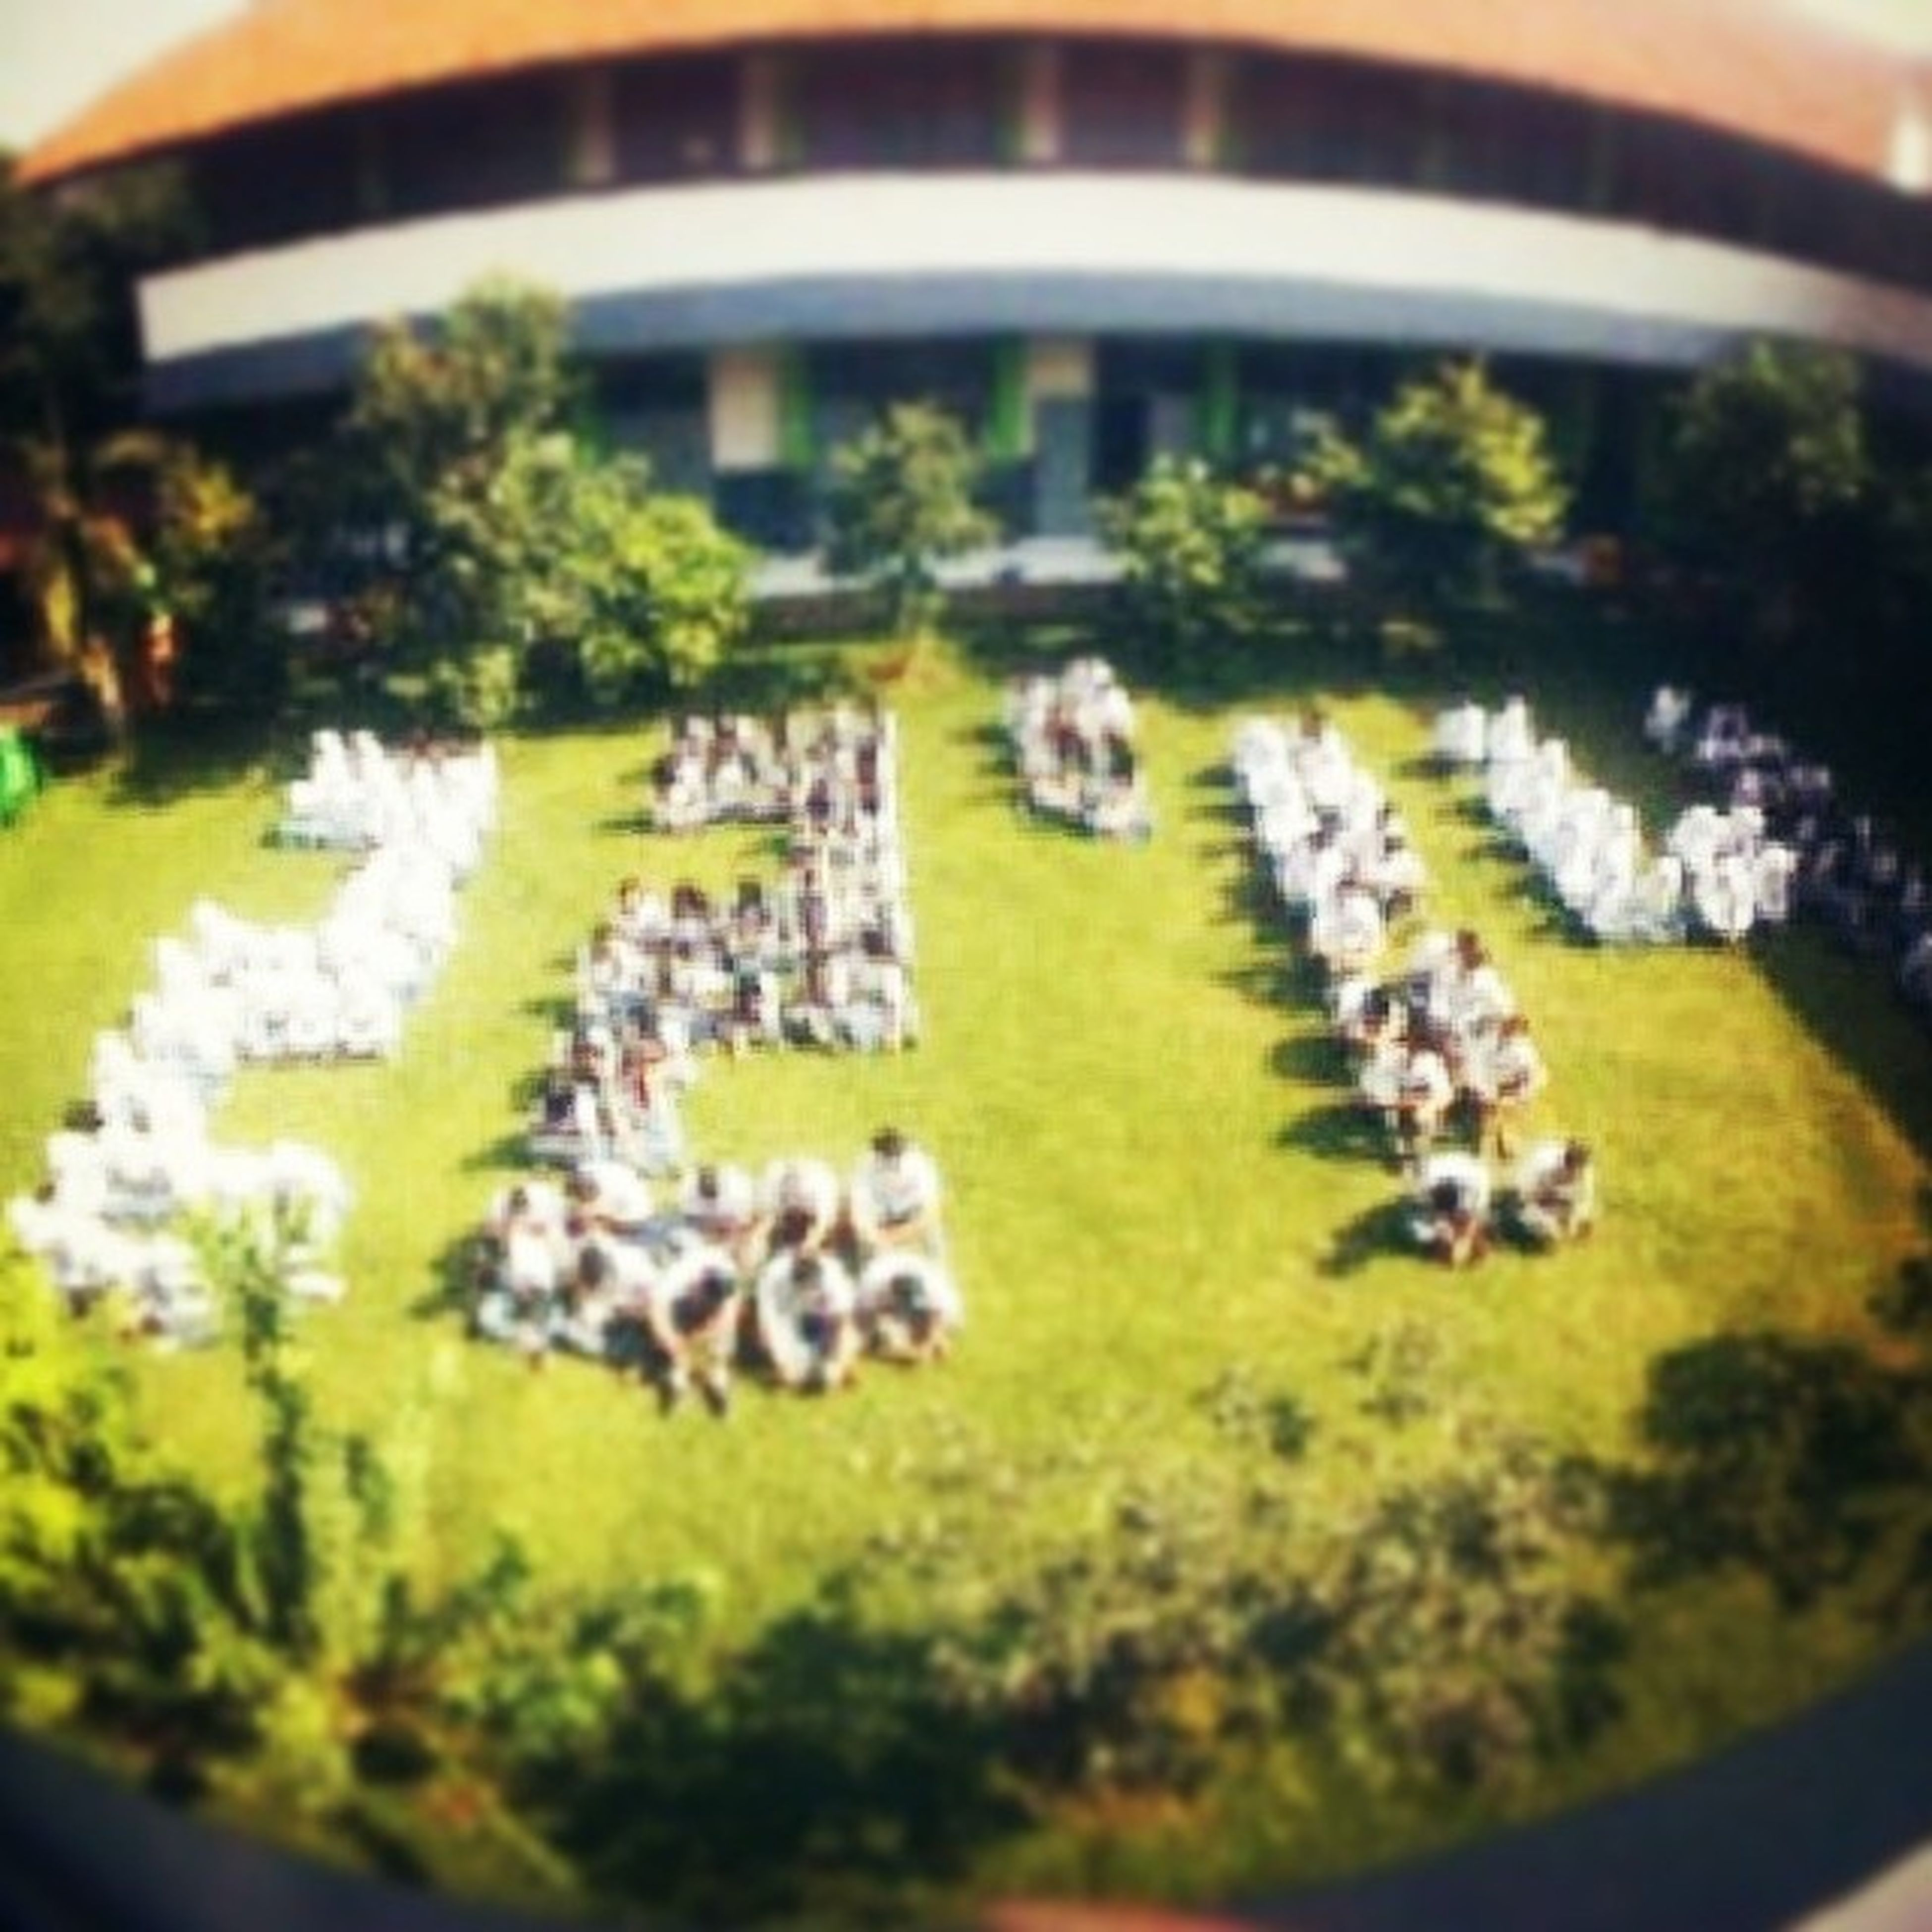 We are 43 generation part of 22 vhs 22vhs 43generation BTS Likeforlike followtofollow instapic instaday instanesia